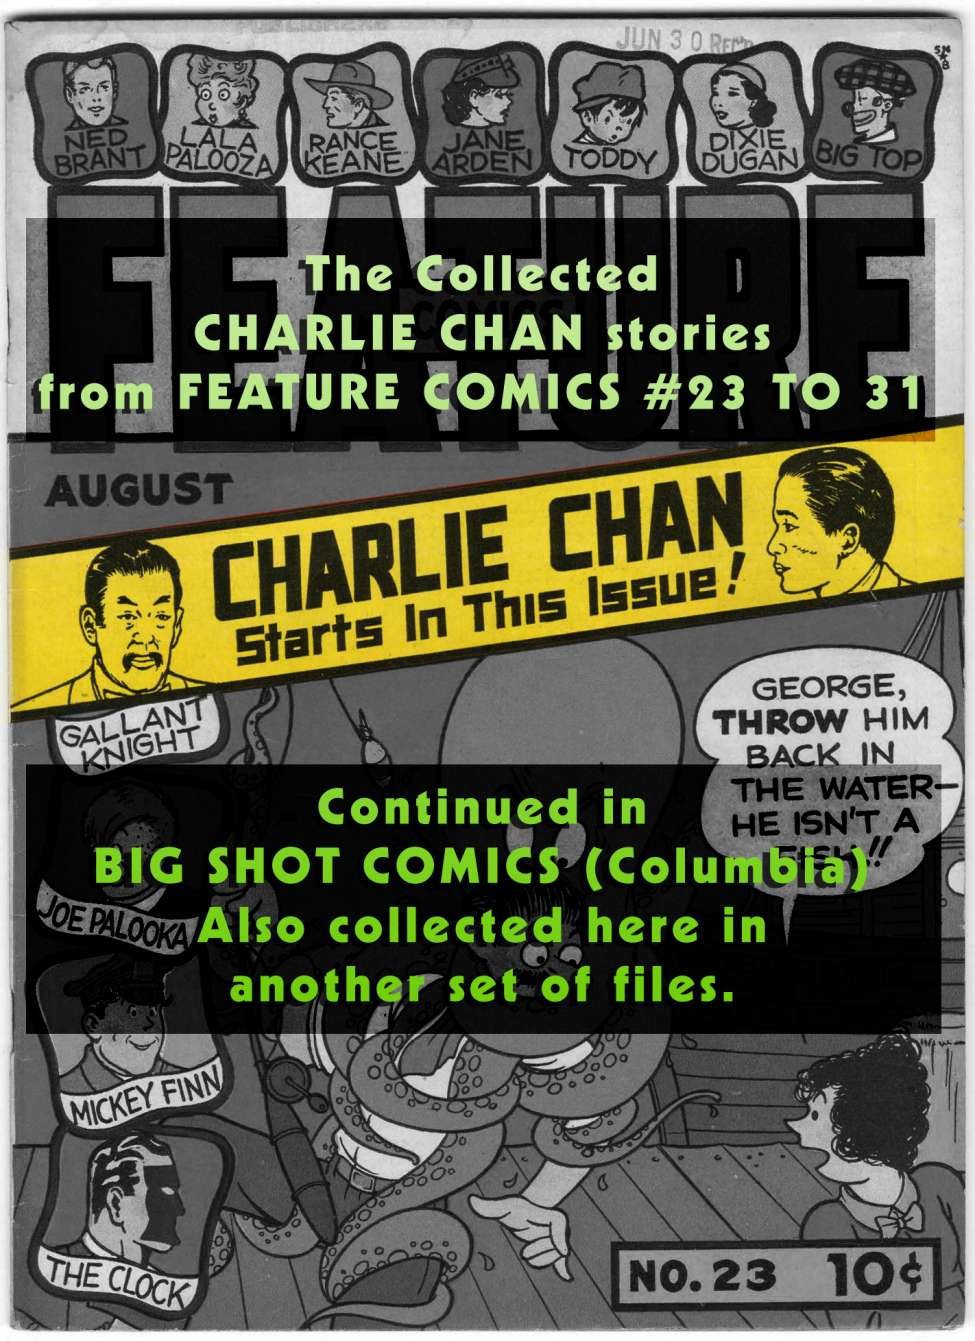 Comic Book Cover For Charlie Chan Stories from Quality's Feature Comics